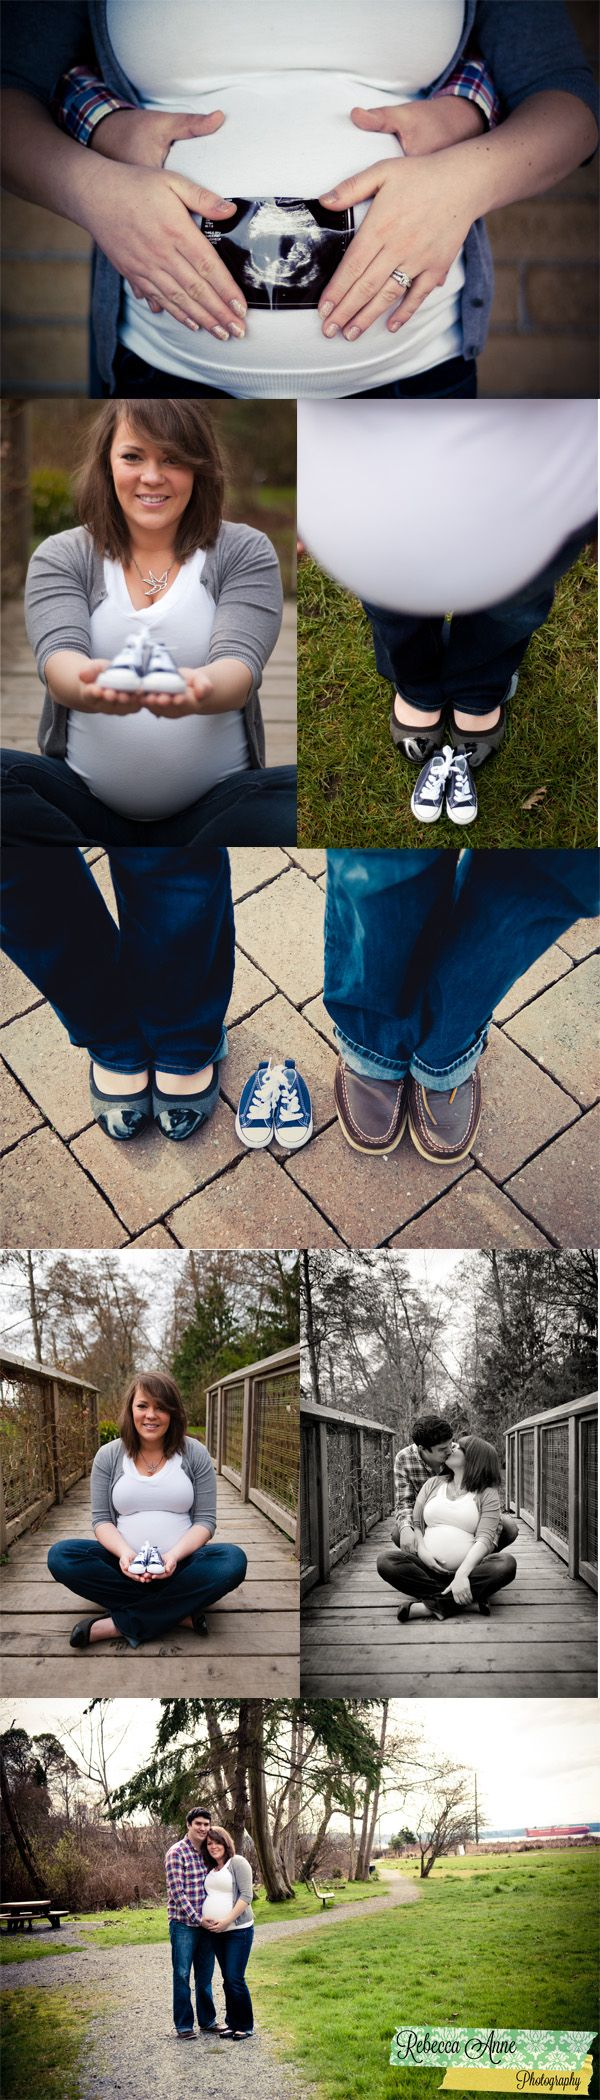 Maternity Pictures | Tacoma, WA Photographer | Rebecca Anne photography #Maternity #Pictures #Poses